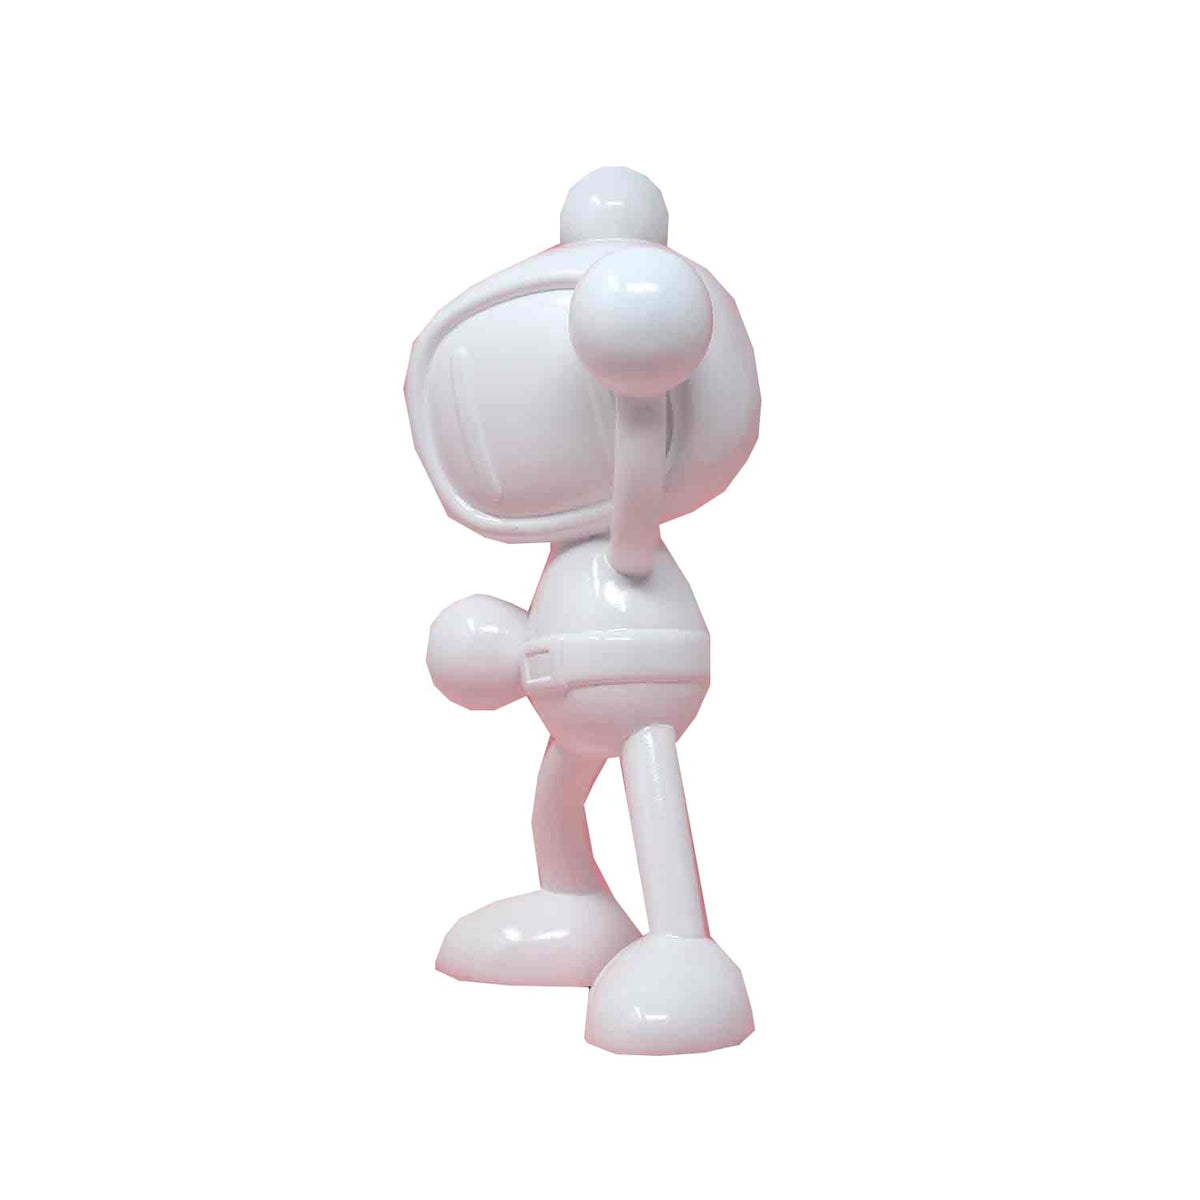 Bomberman Mini Icons 9.8 Inch Collectible Resin Statue | White